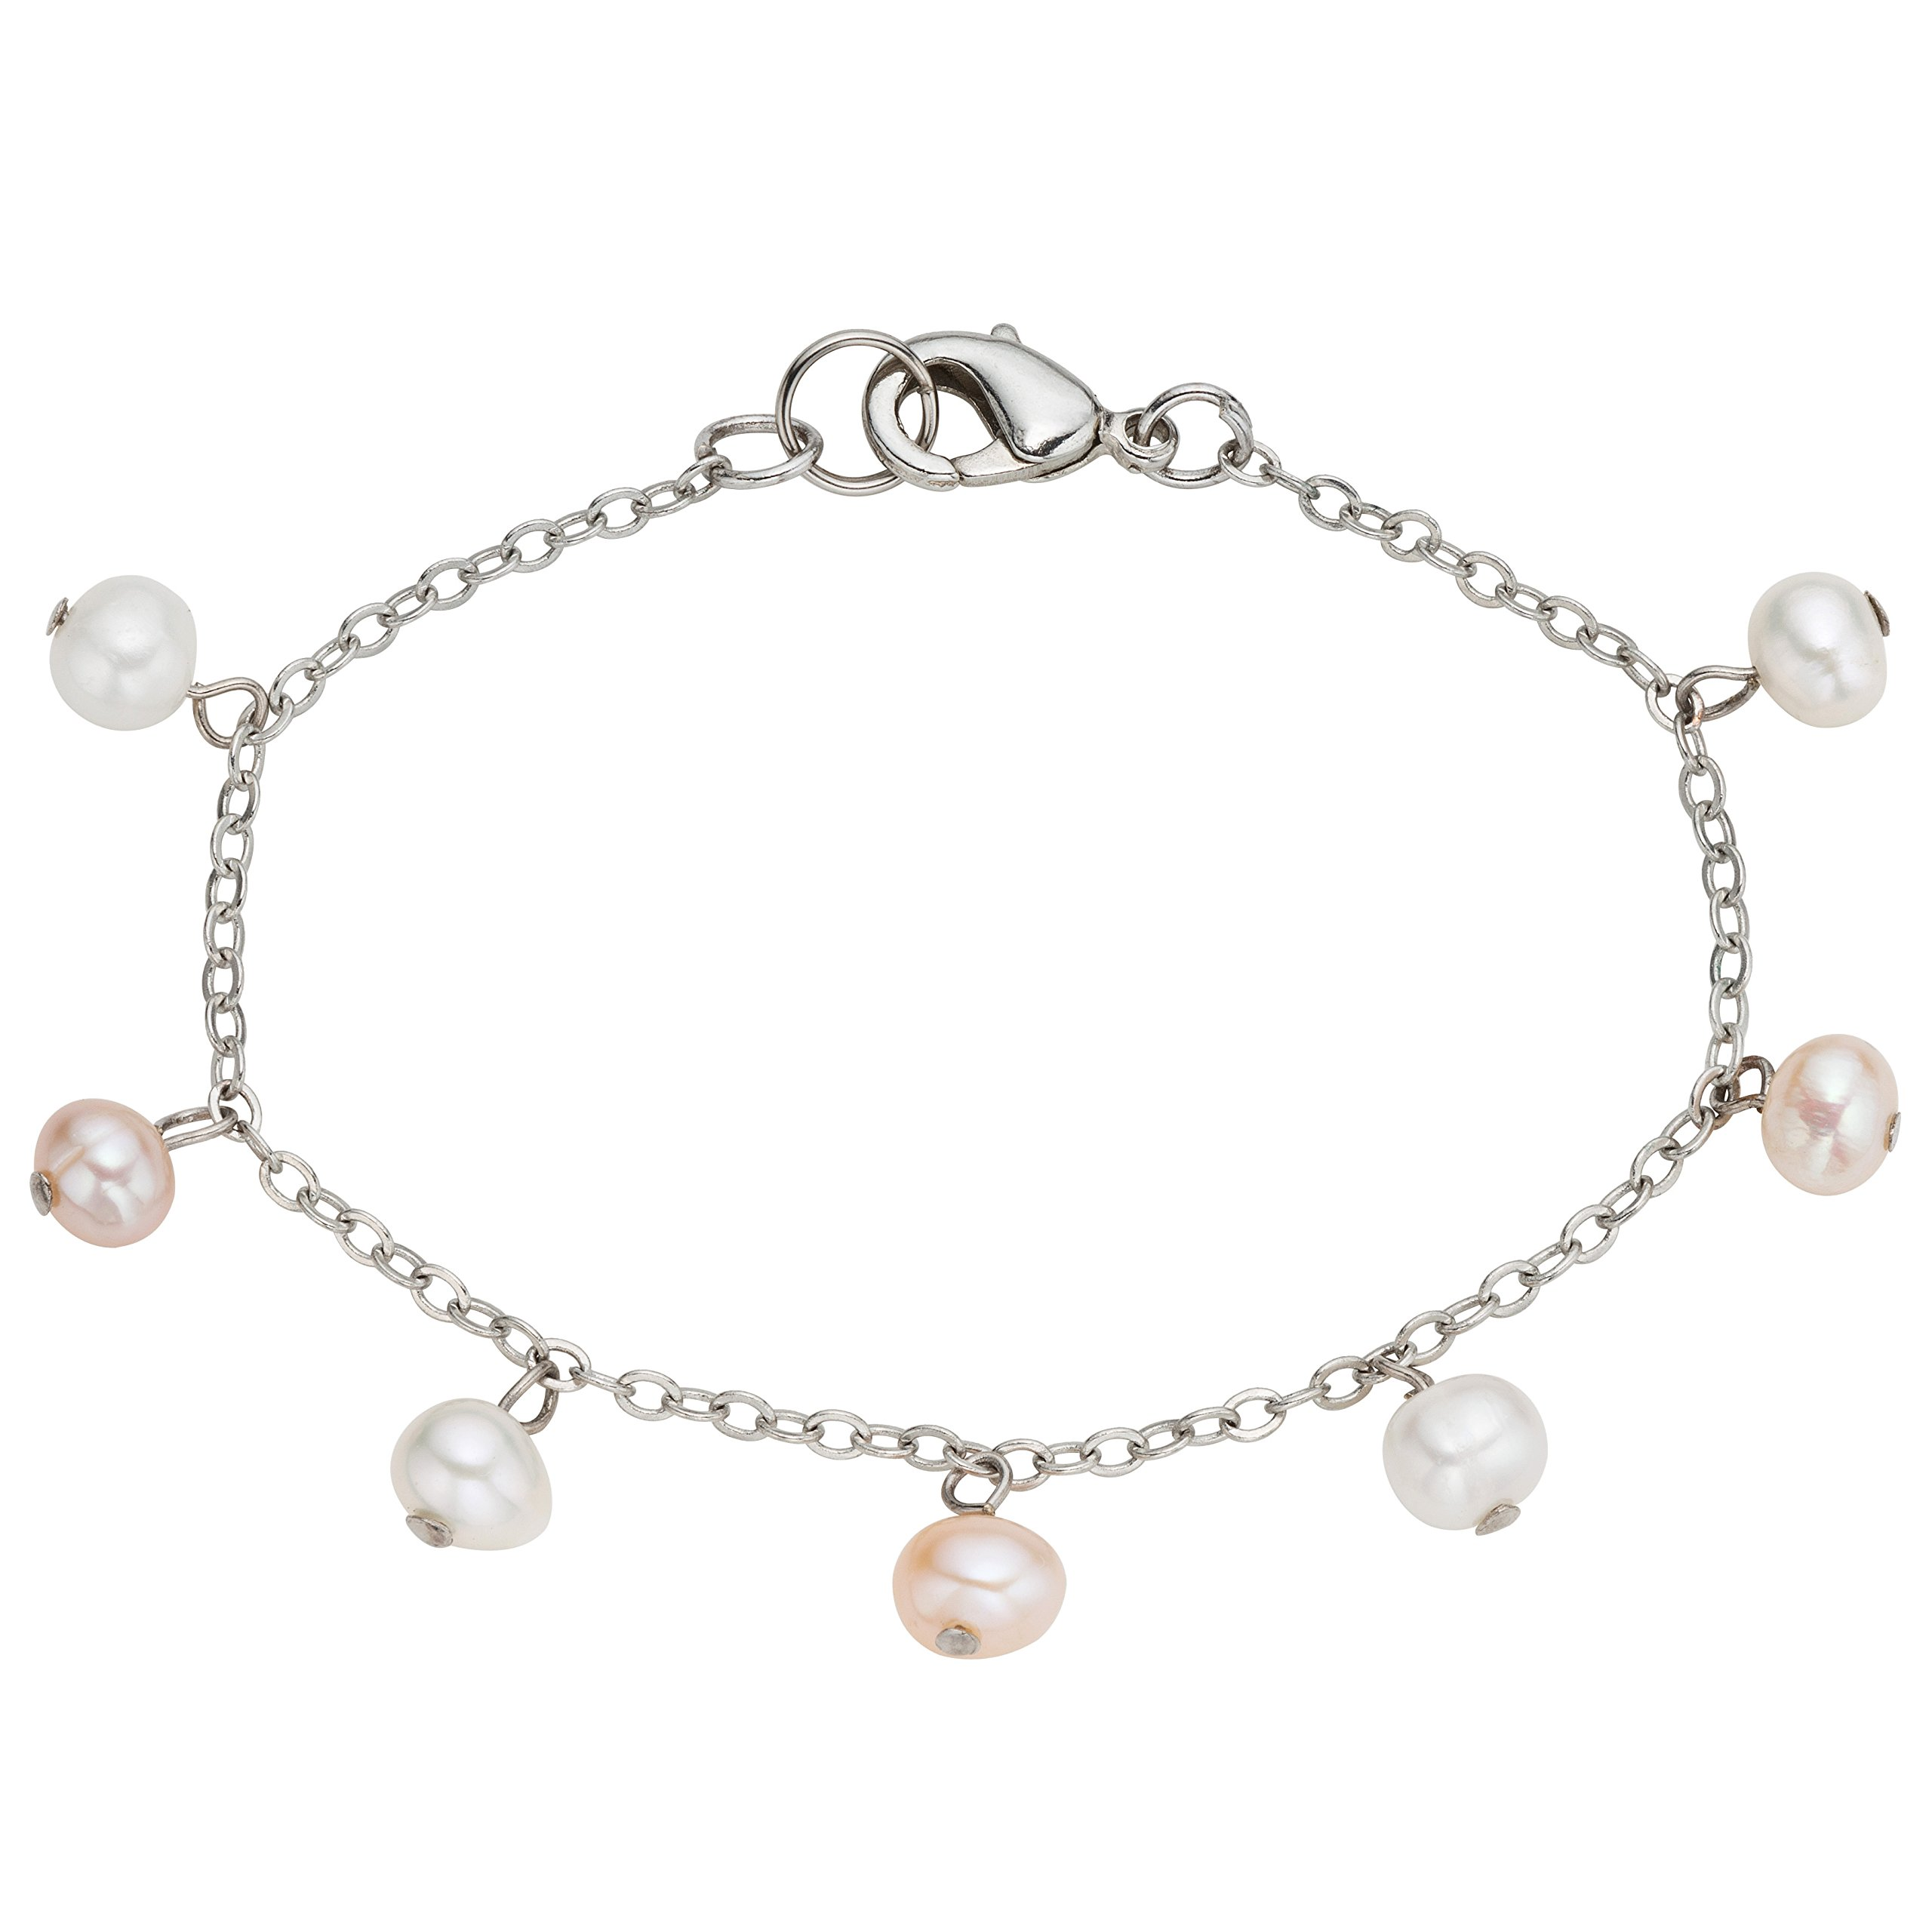 Stainless Steel Cultured Freshwater Multi-color Pearl Chain Kids Anklet (4-5 mm) Birthday Gift